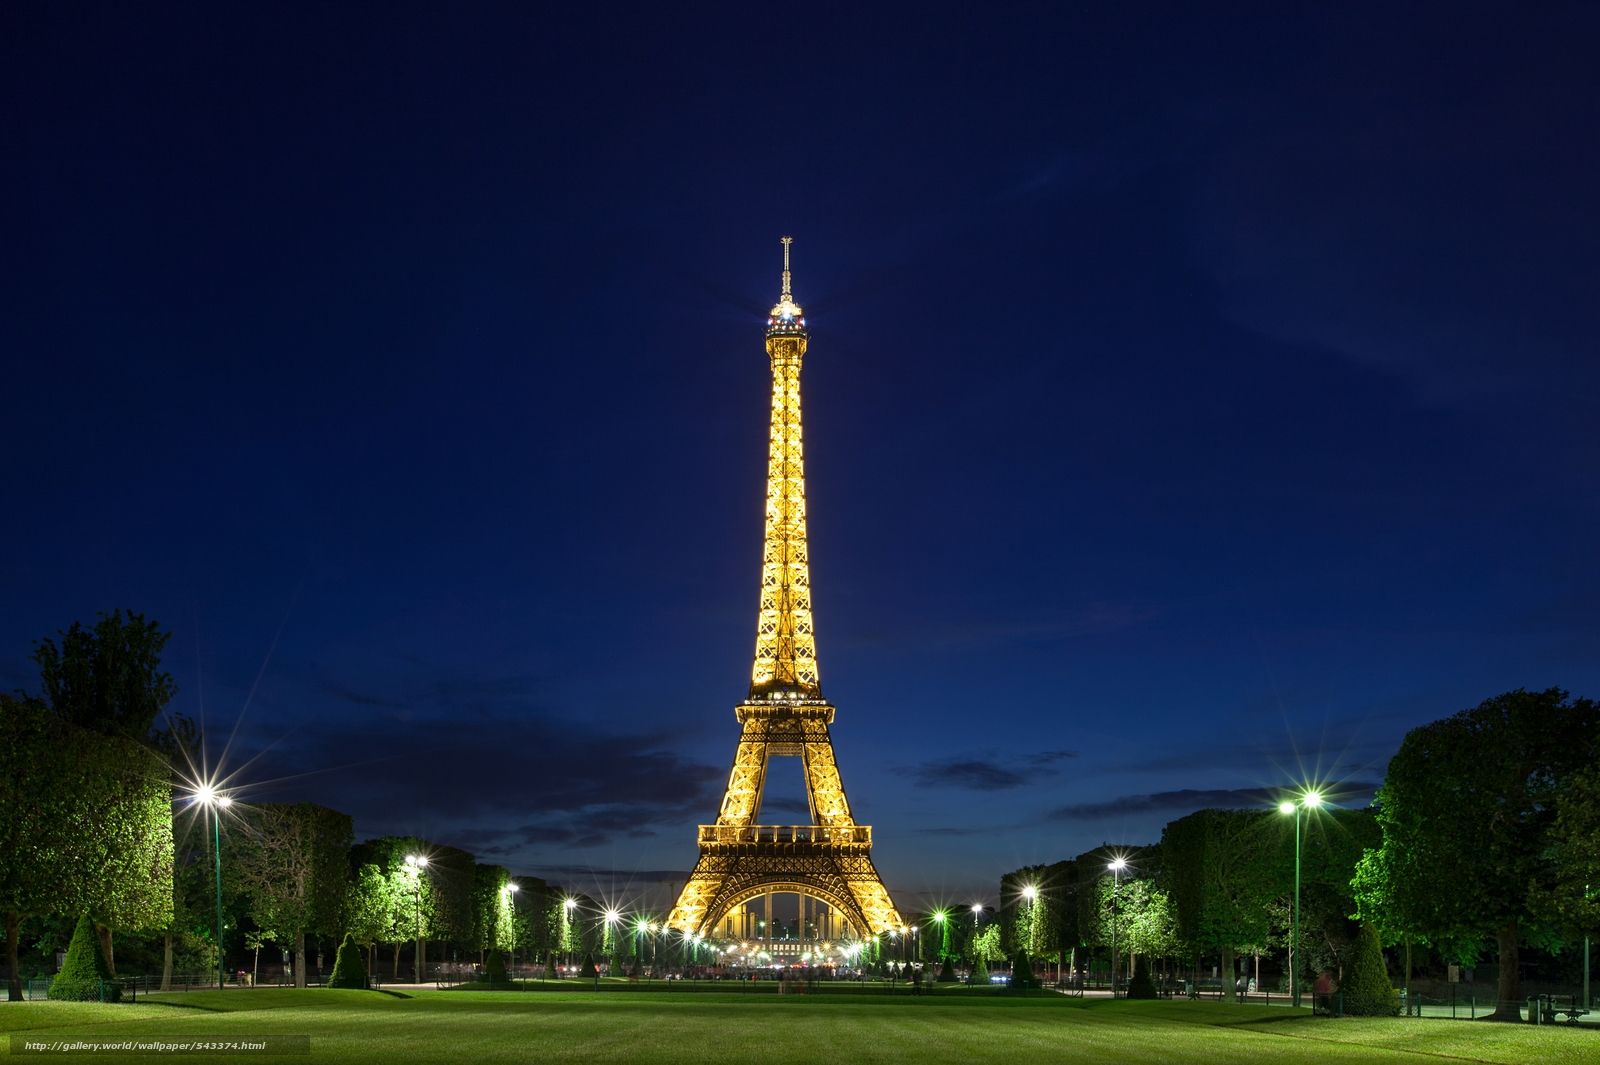 Paris france wallpaper background wallpapersafari - Paris eiffel tower desktop wallpaper ...